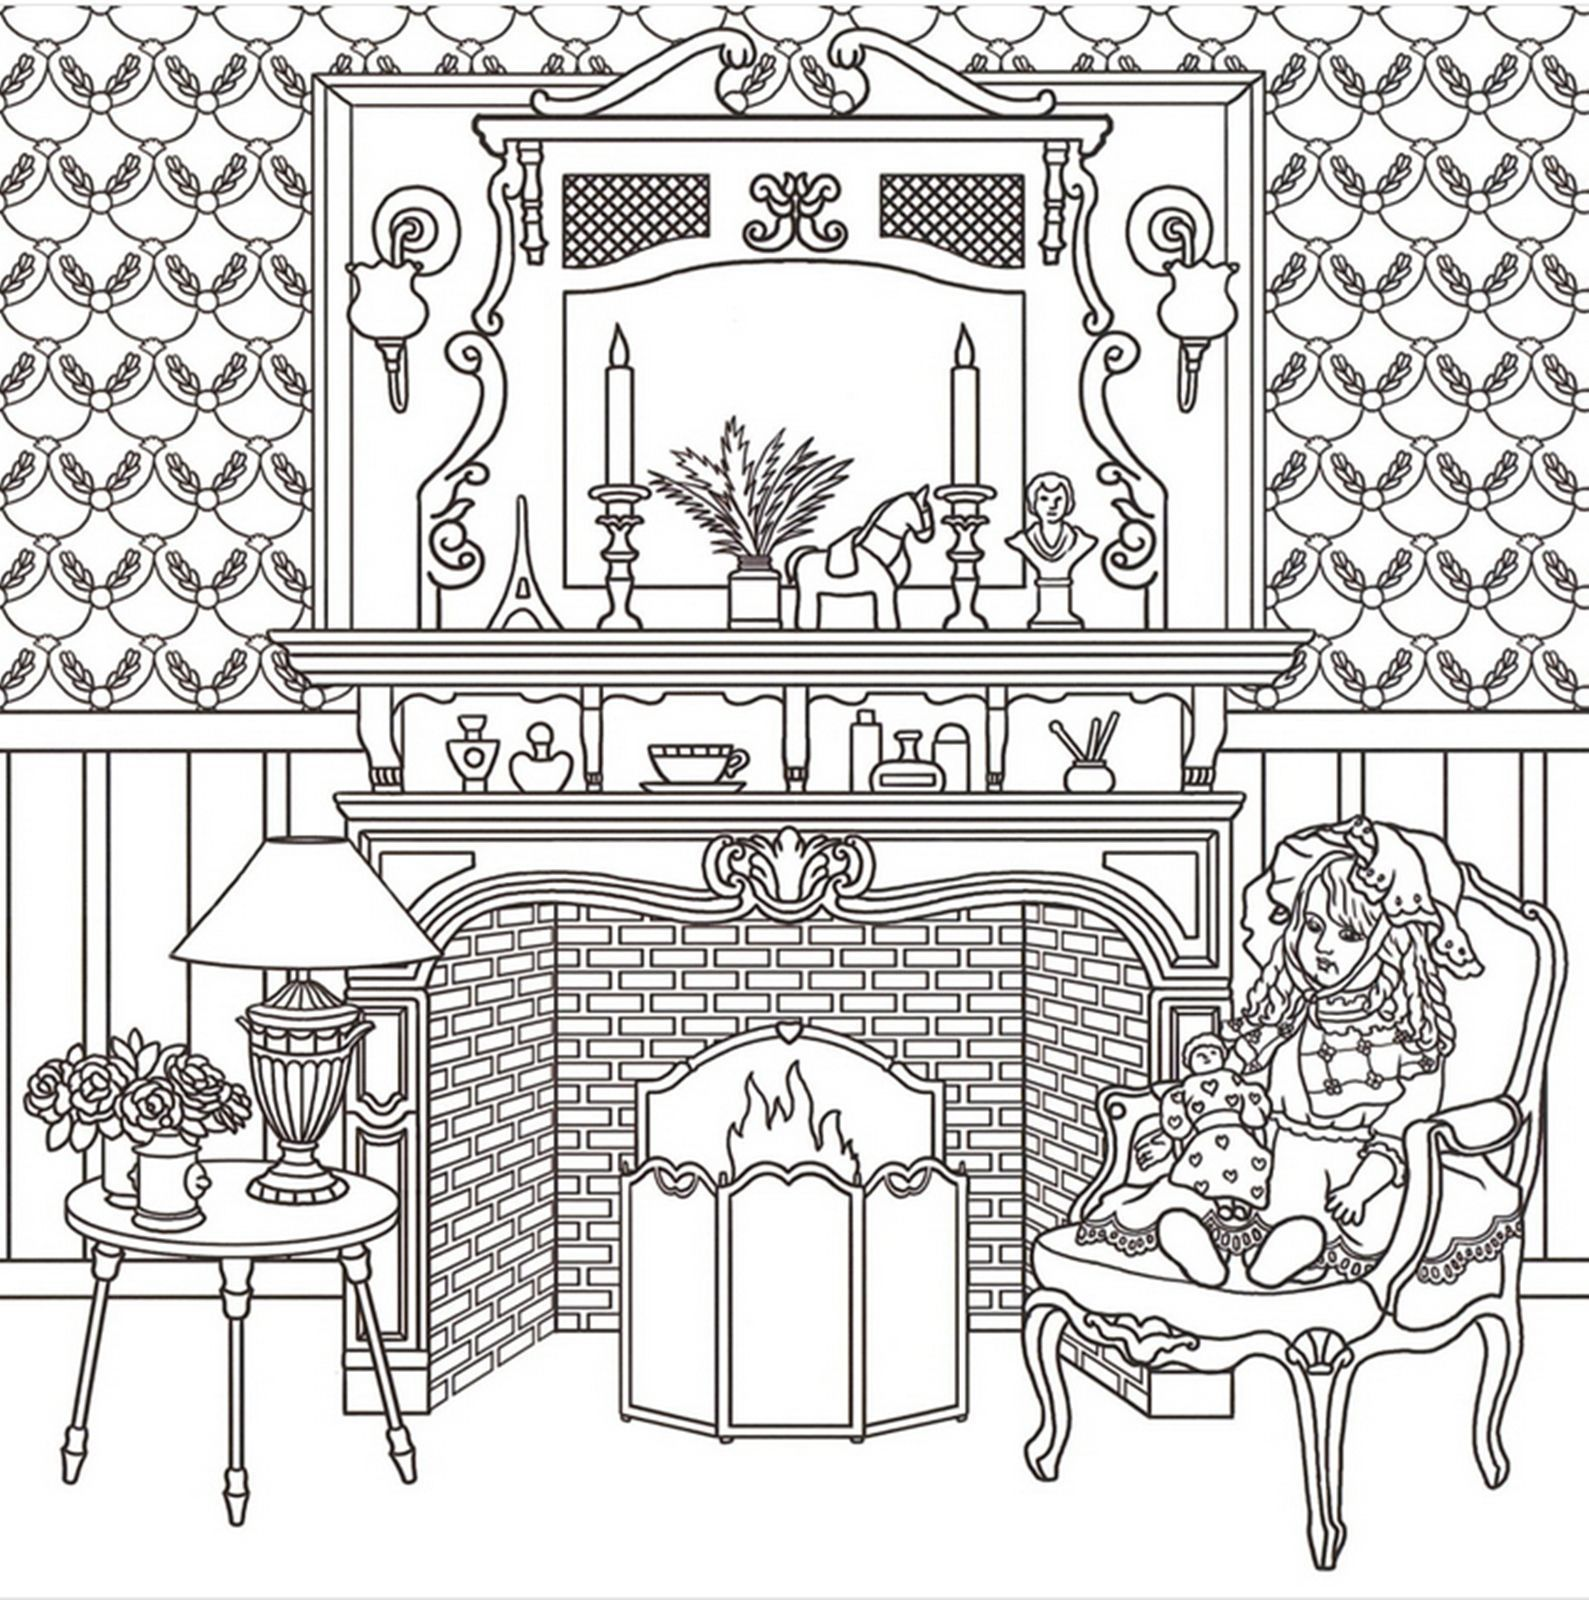 Welcome To The Doll House Coloring Book Anti Stress Art Therapy Charlotte Adult